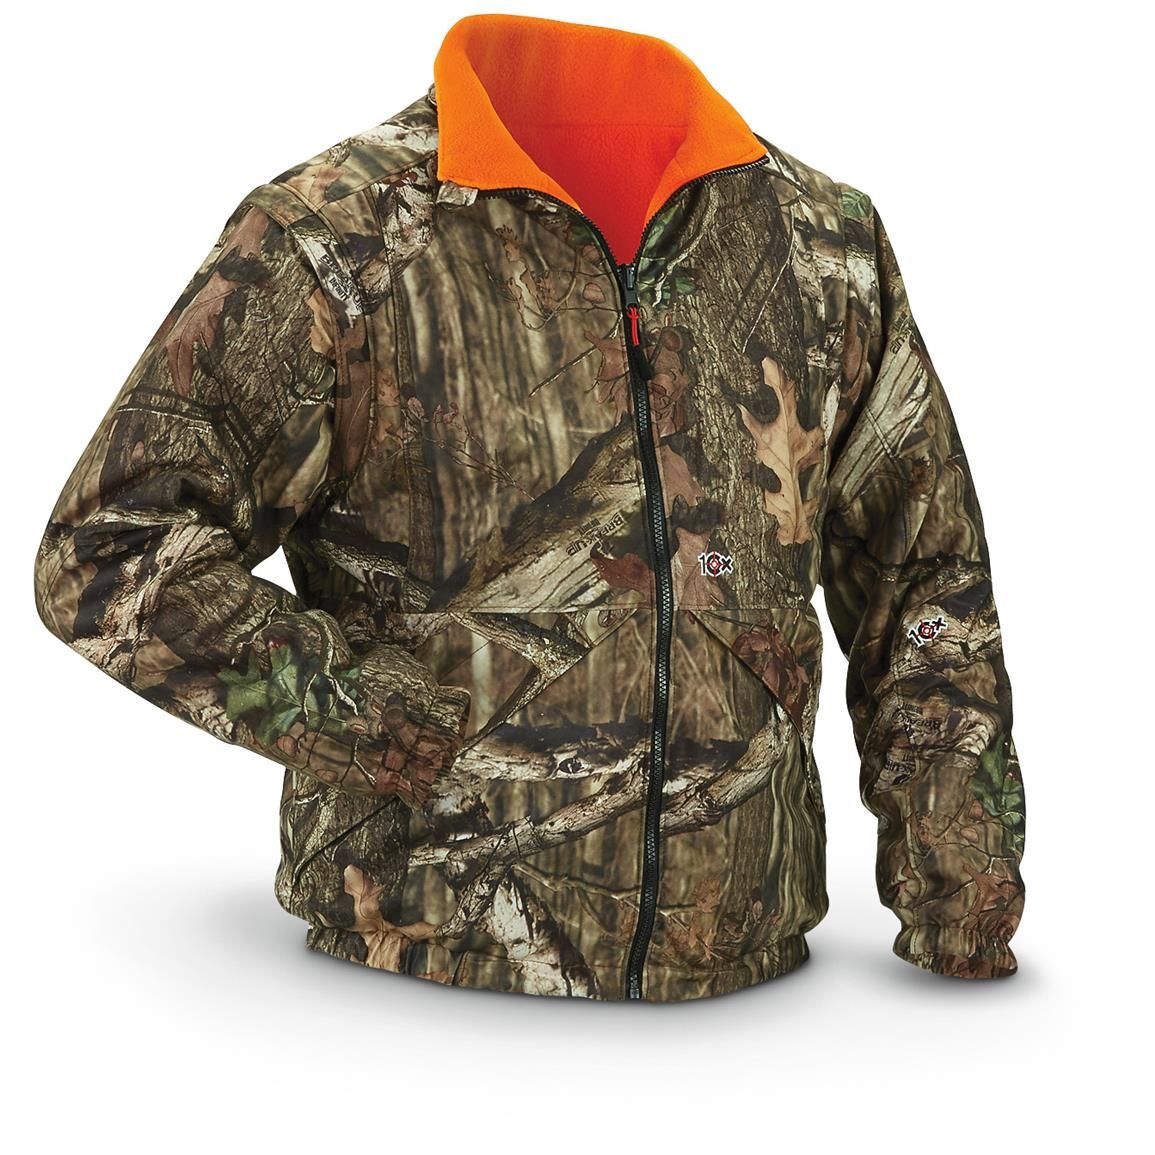 walls 10x men s reversible inner systems camo jacket on walls hunting coveralls id=19091